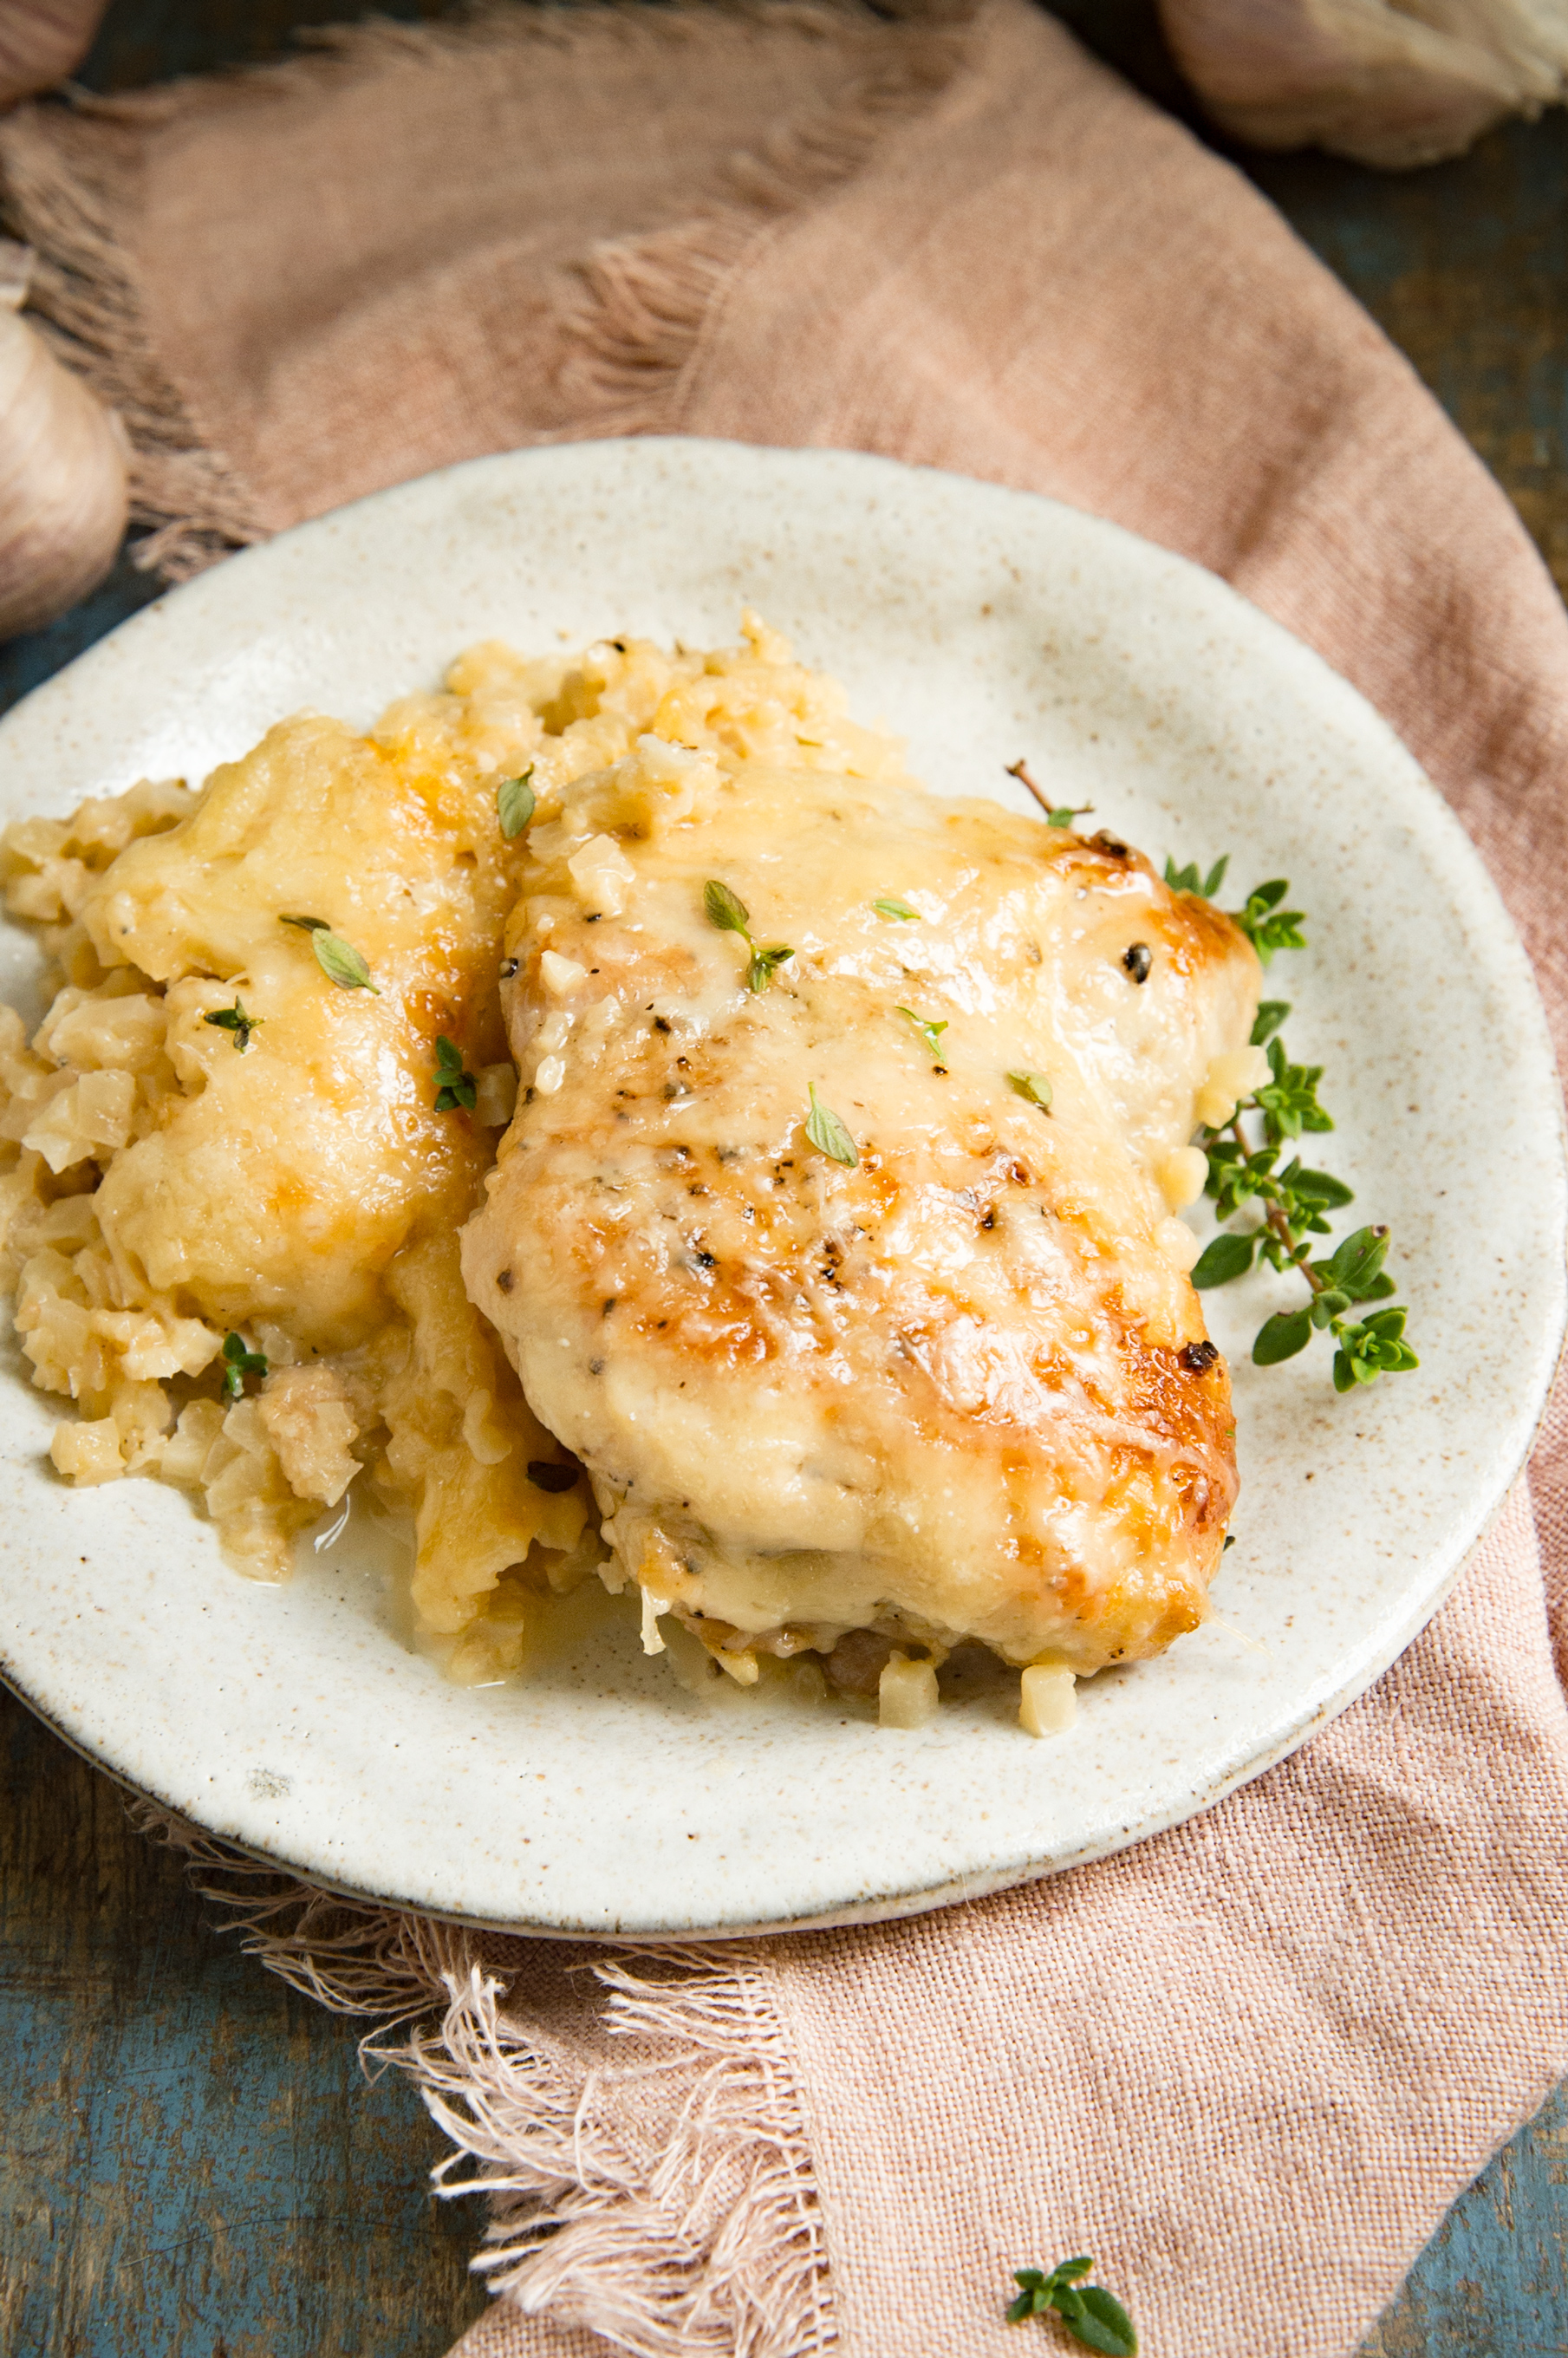 Low-Carb One Skillet Creamy Garlic Parmesan Chicken-on a plate.